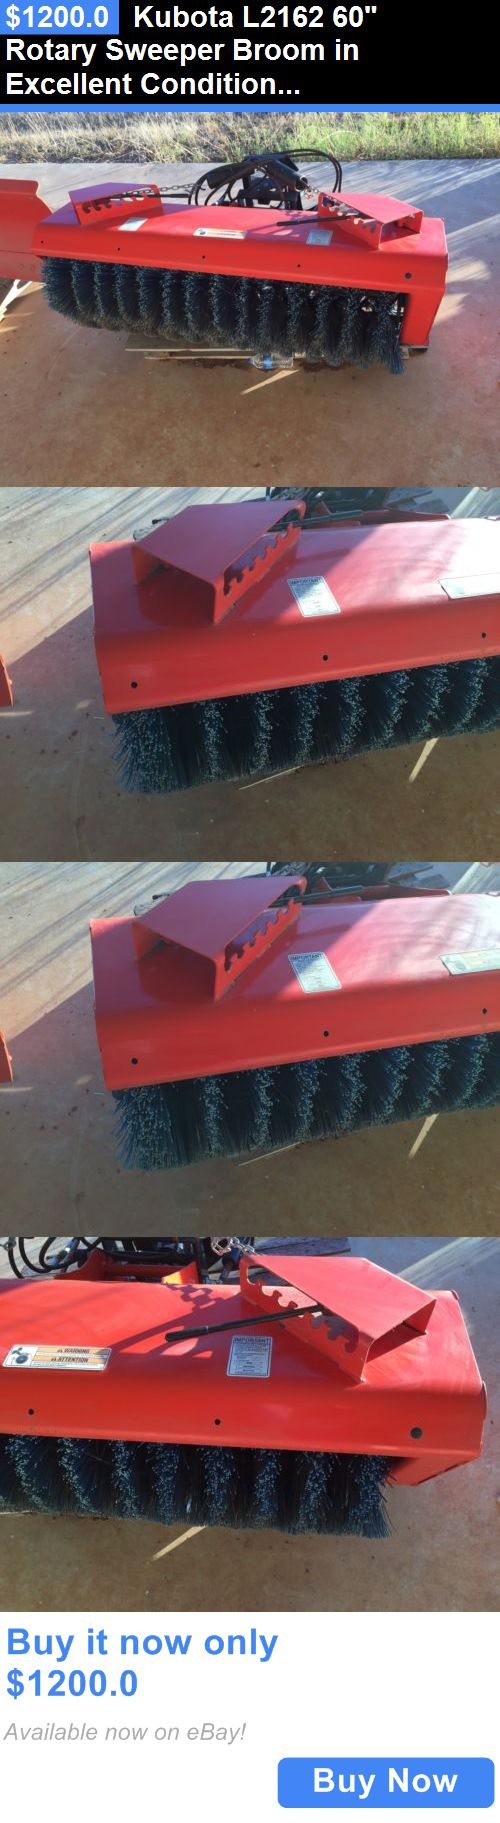 heavy equipment: Kubota L2162 60 Rotary Sweeper Broom In Excellent Condition. Never Used. BUY IT NOW ONLY: $1200.0